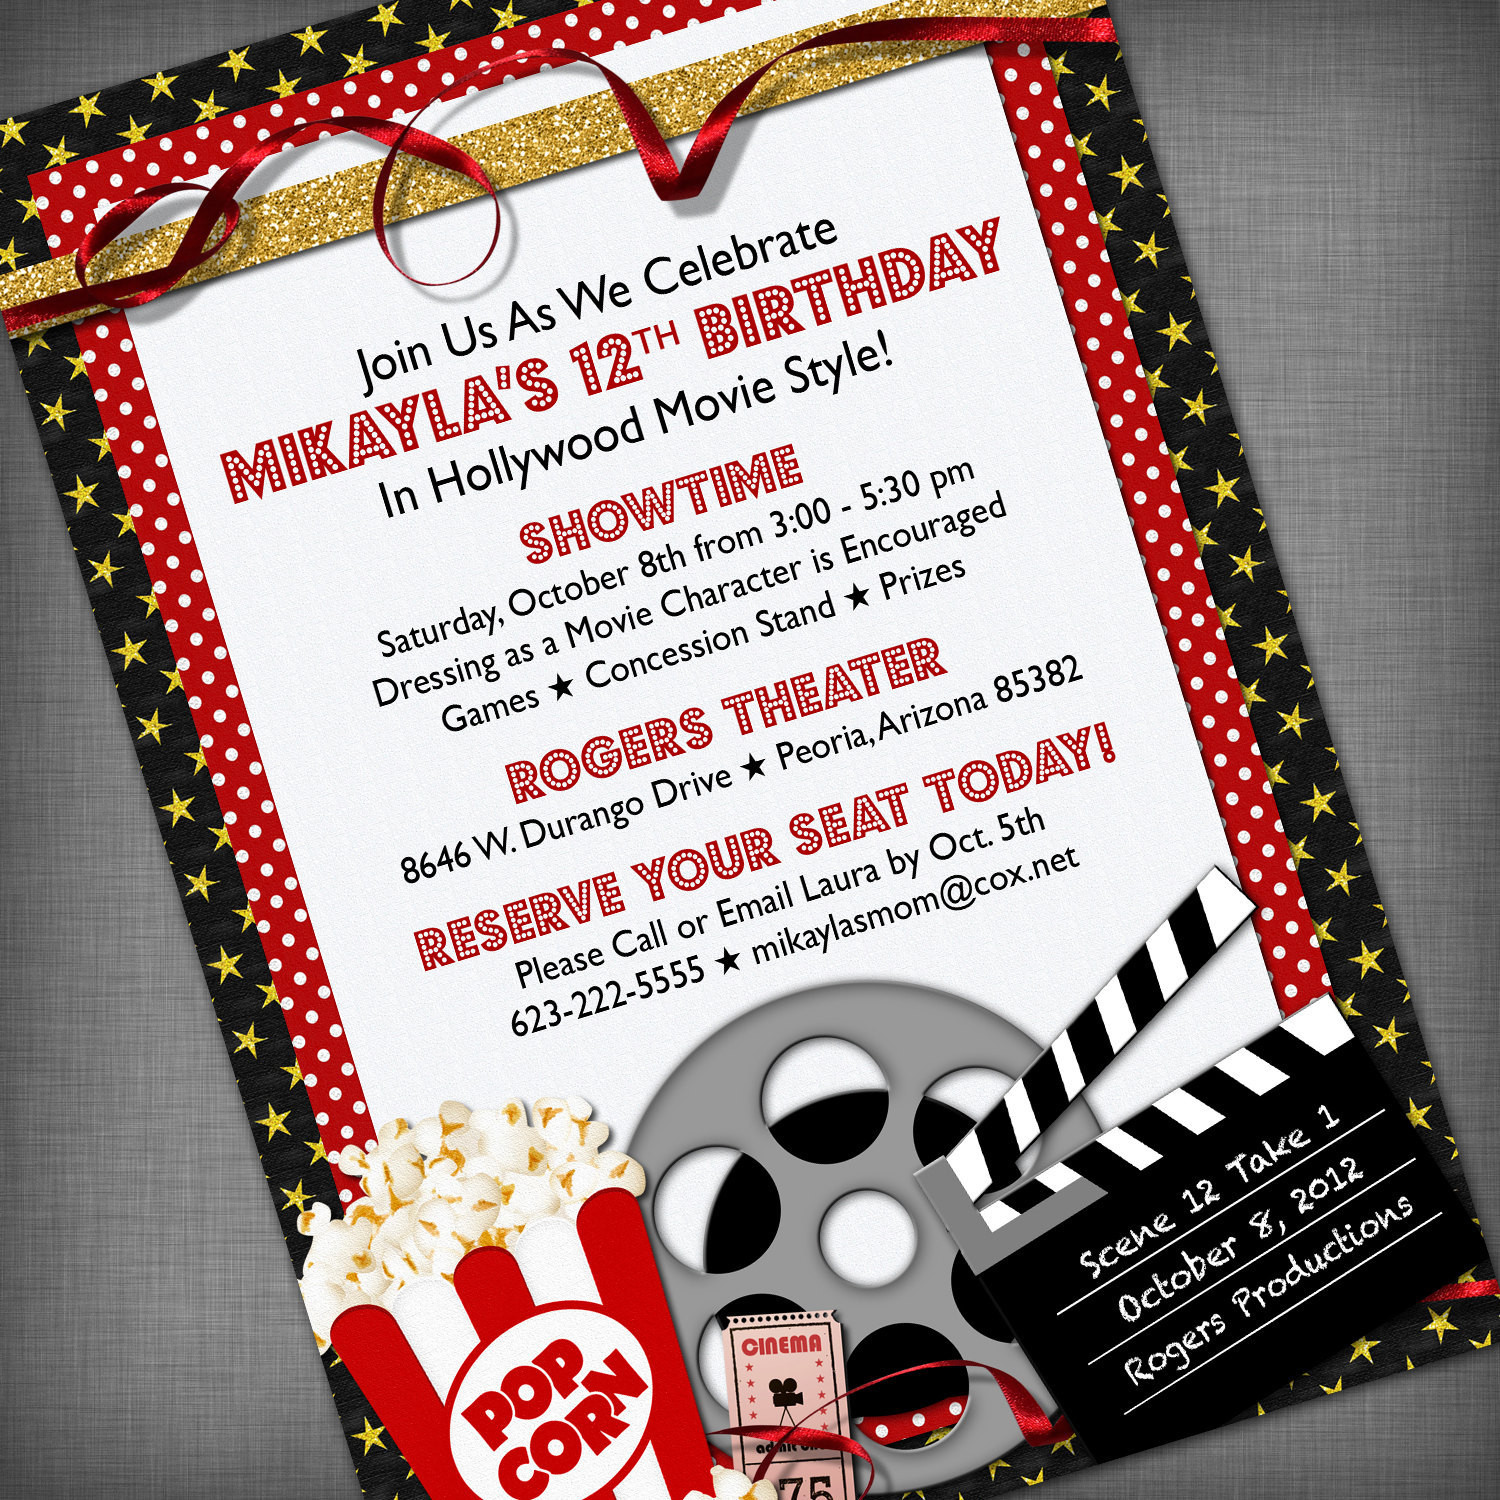 Best ideas about Movie Birthday Party Invitations . Save or Pin Movie Party Customized Printable Invitation Now.